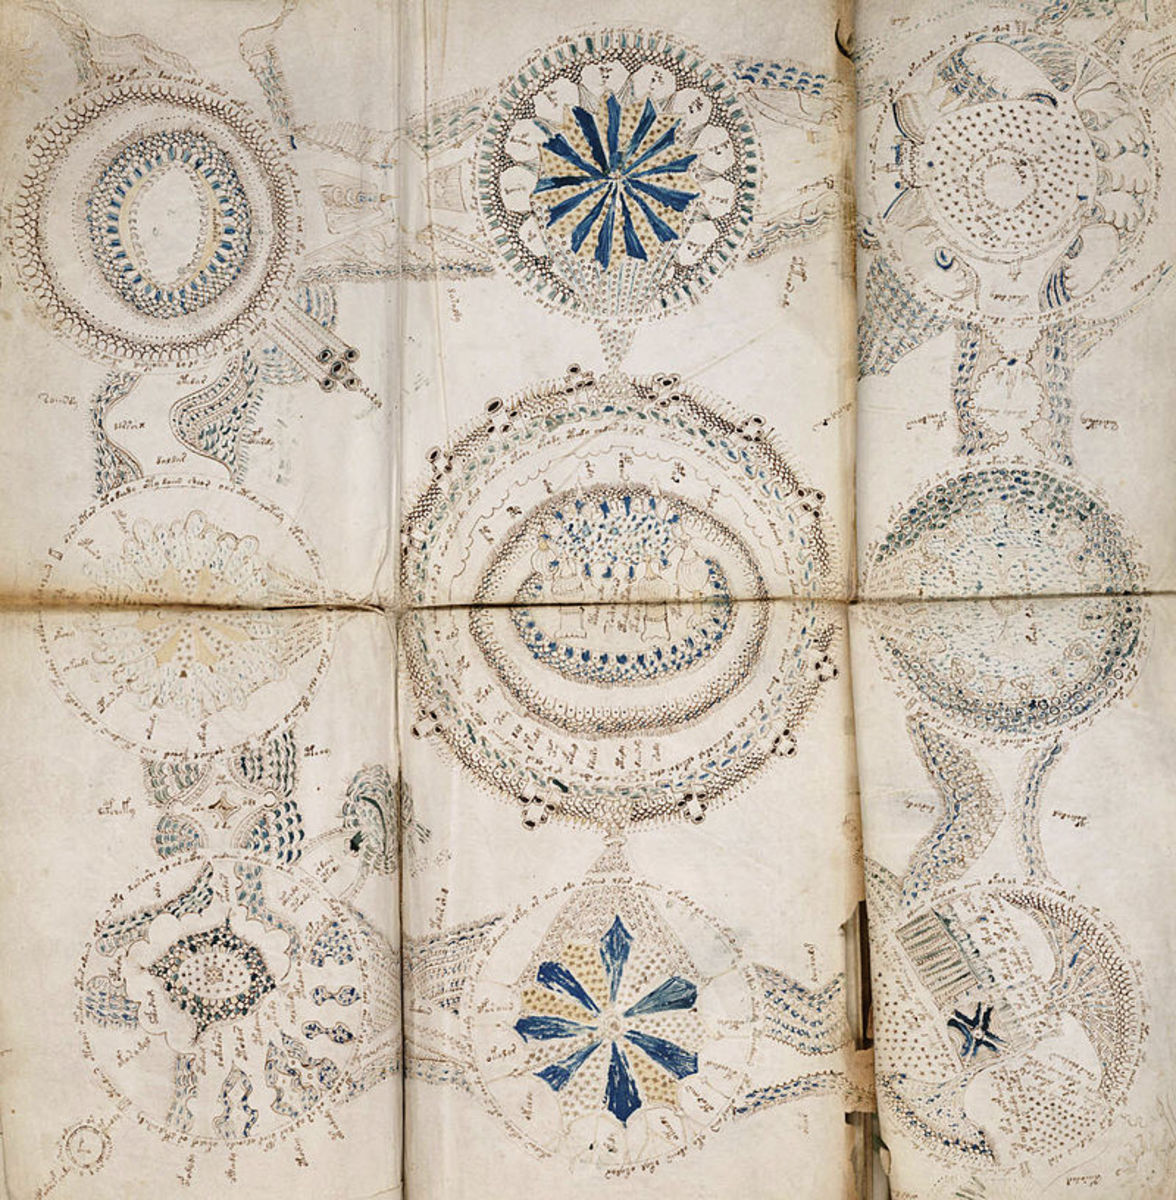 A fold out sheet of circular images. Fold out sheets were uncommon in ancient manuscripts.